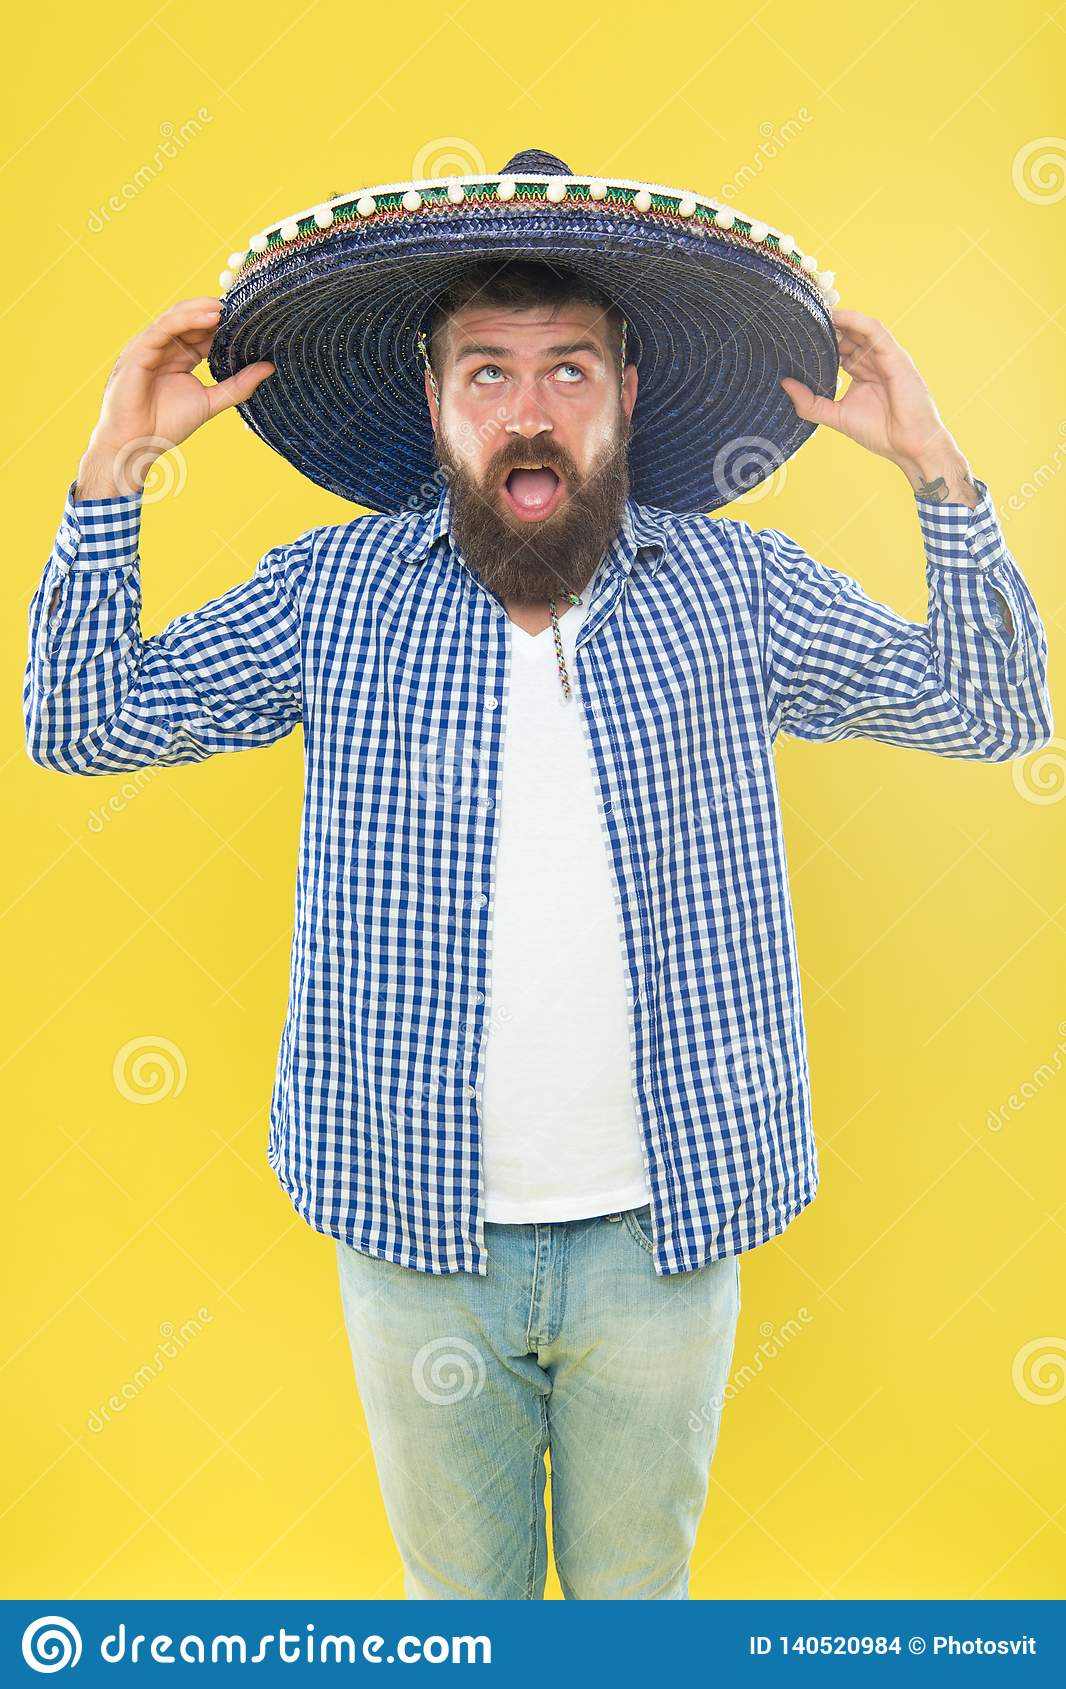 Perfect for sun protection. Traditional fashion accessory for theme costume party. Hipster in wide brim hat. Mexican man